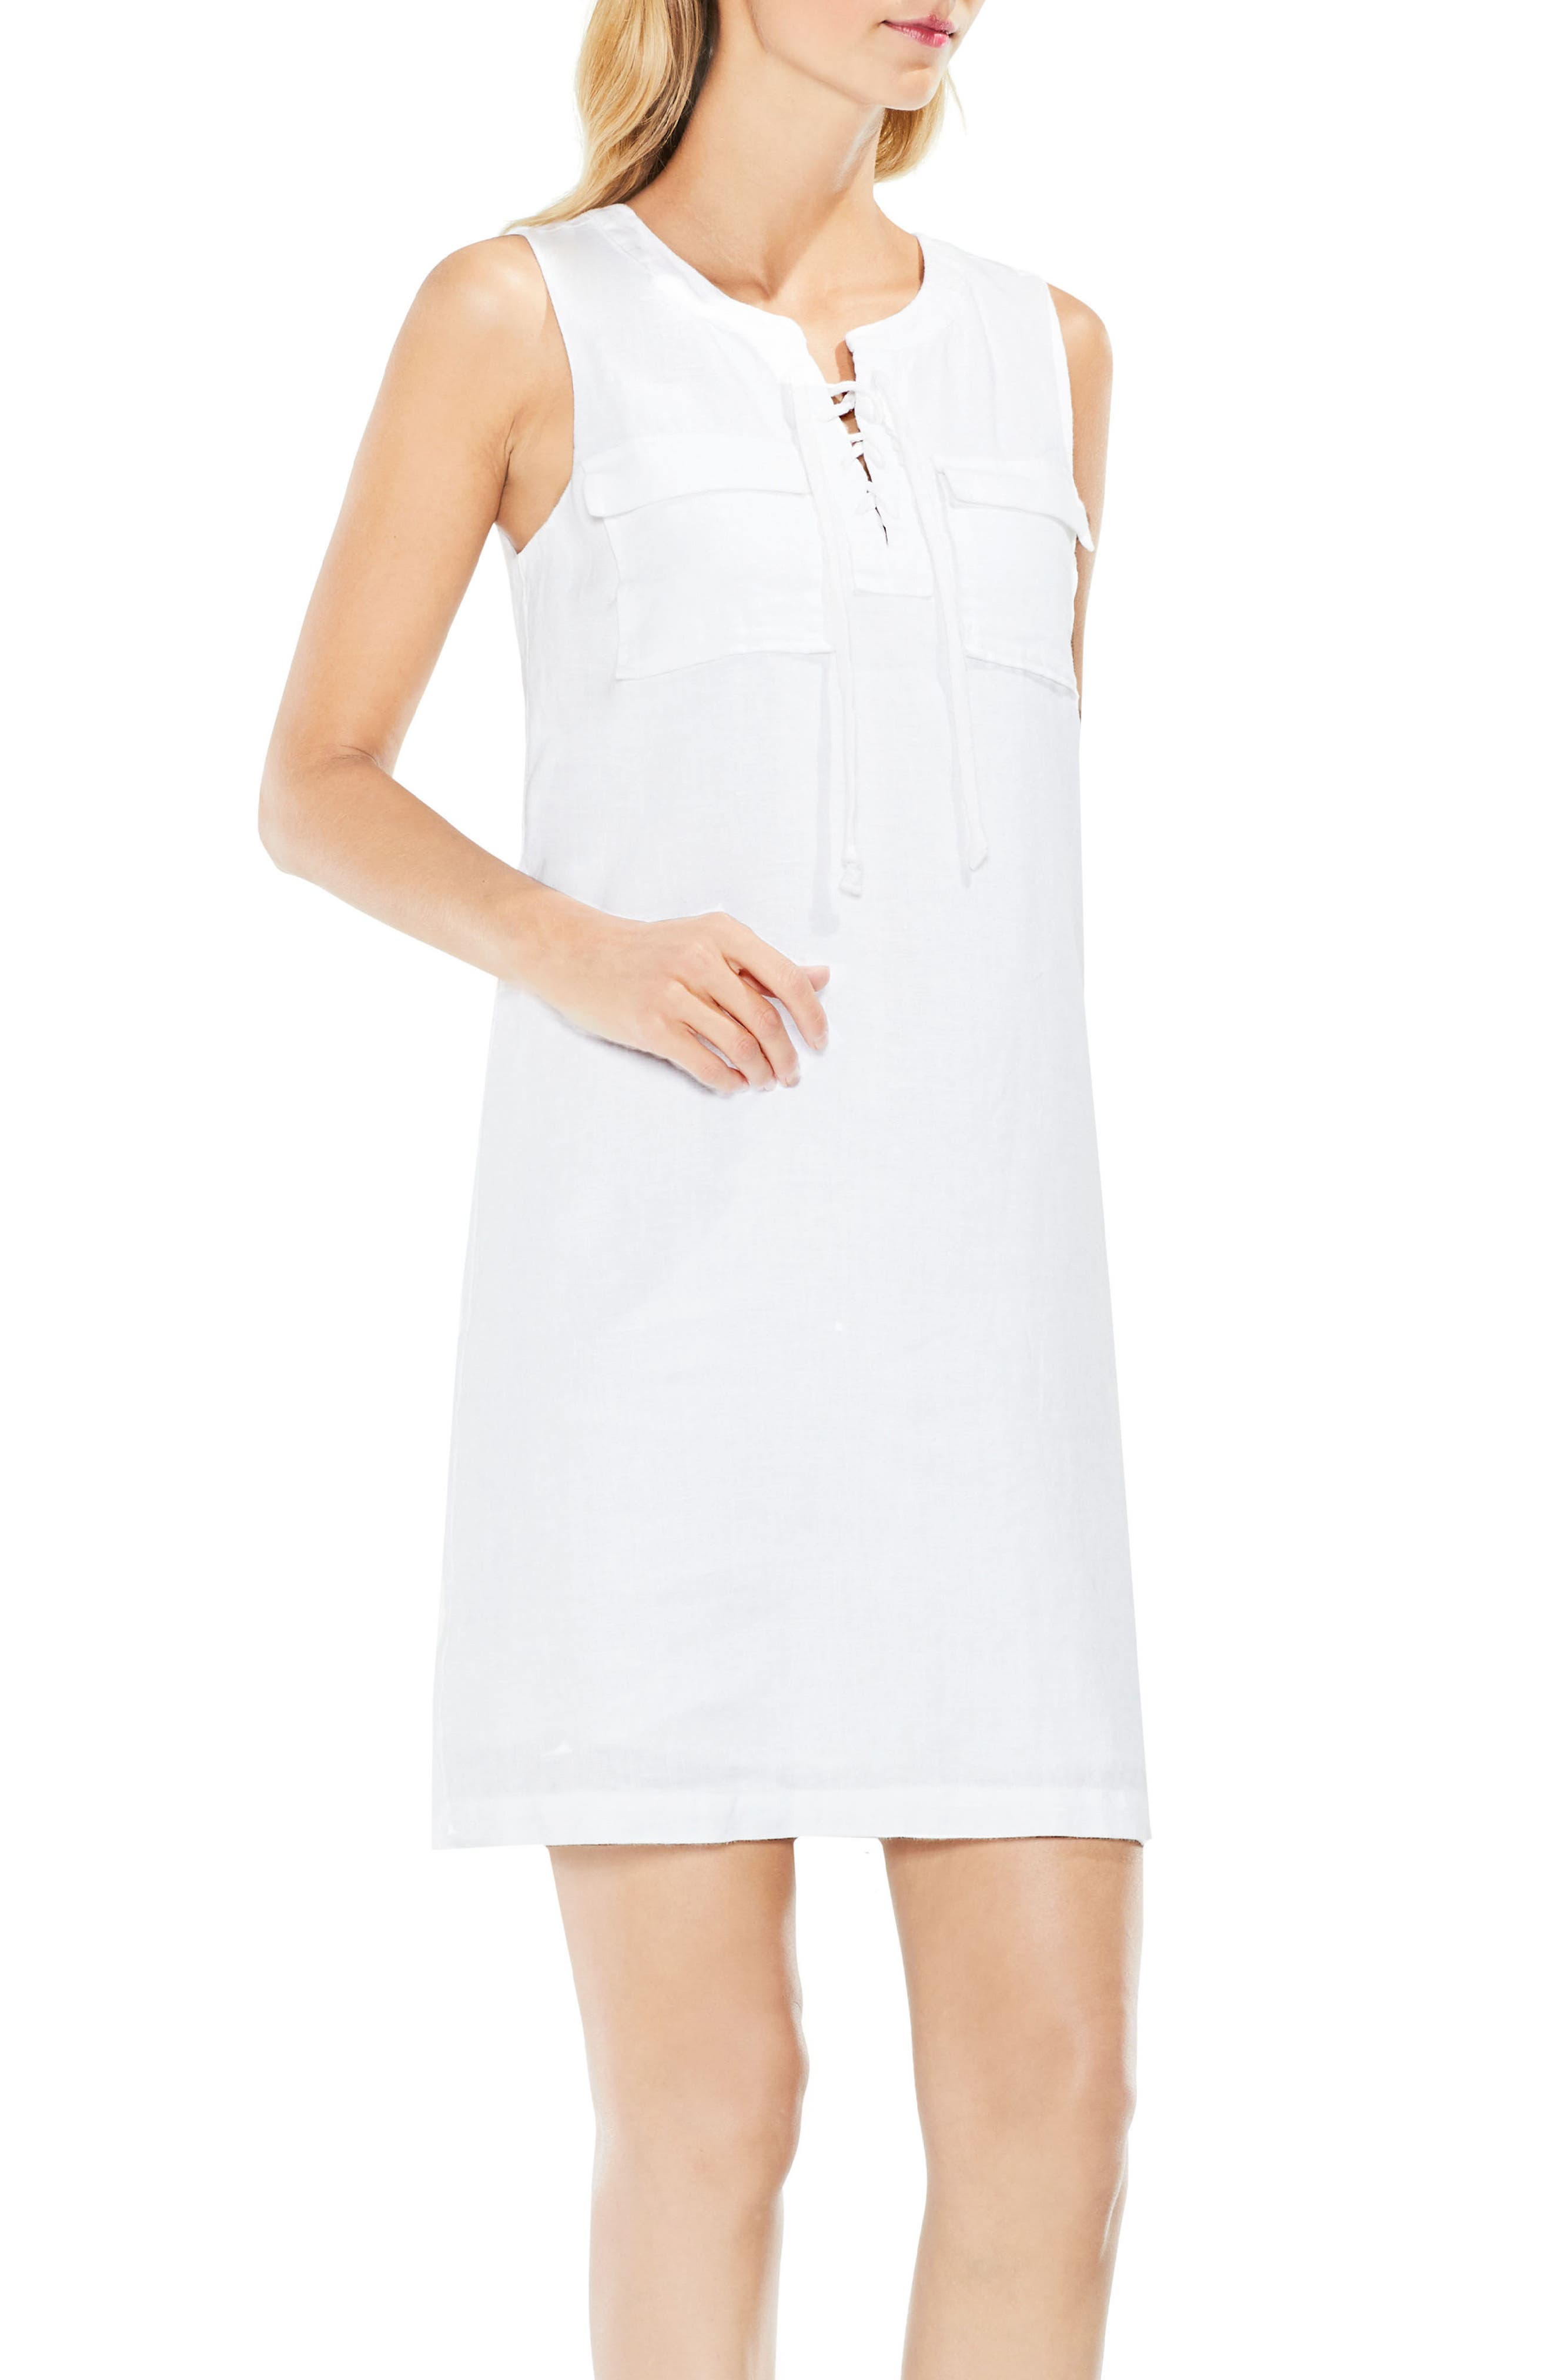 Main Image - Two by Vince Camuto Lace-Up Linen Shift Dress